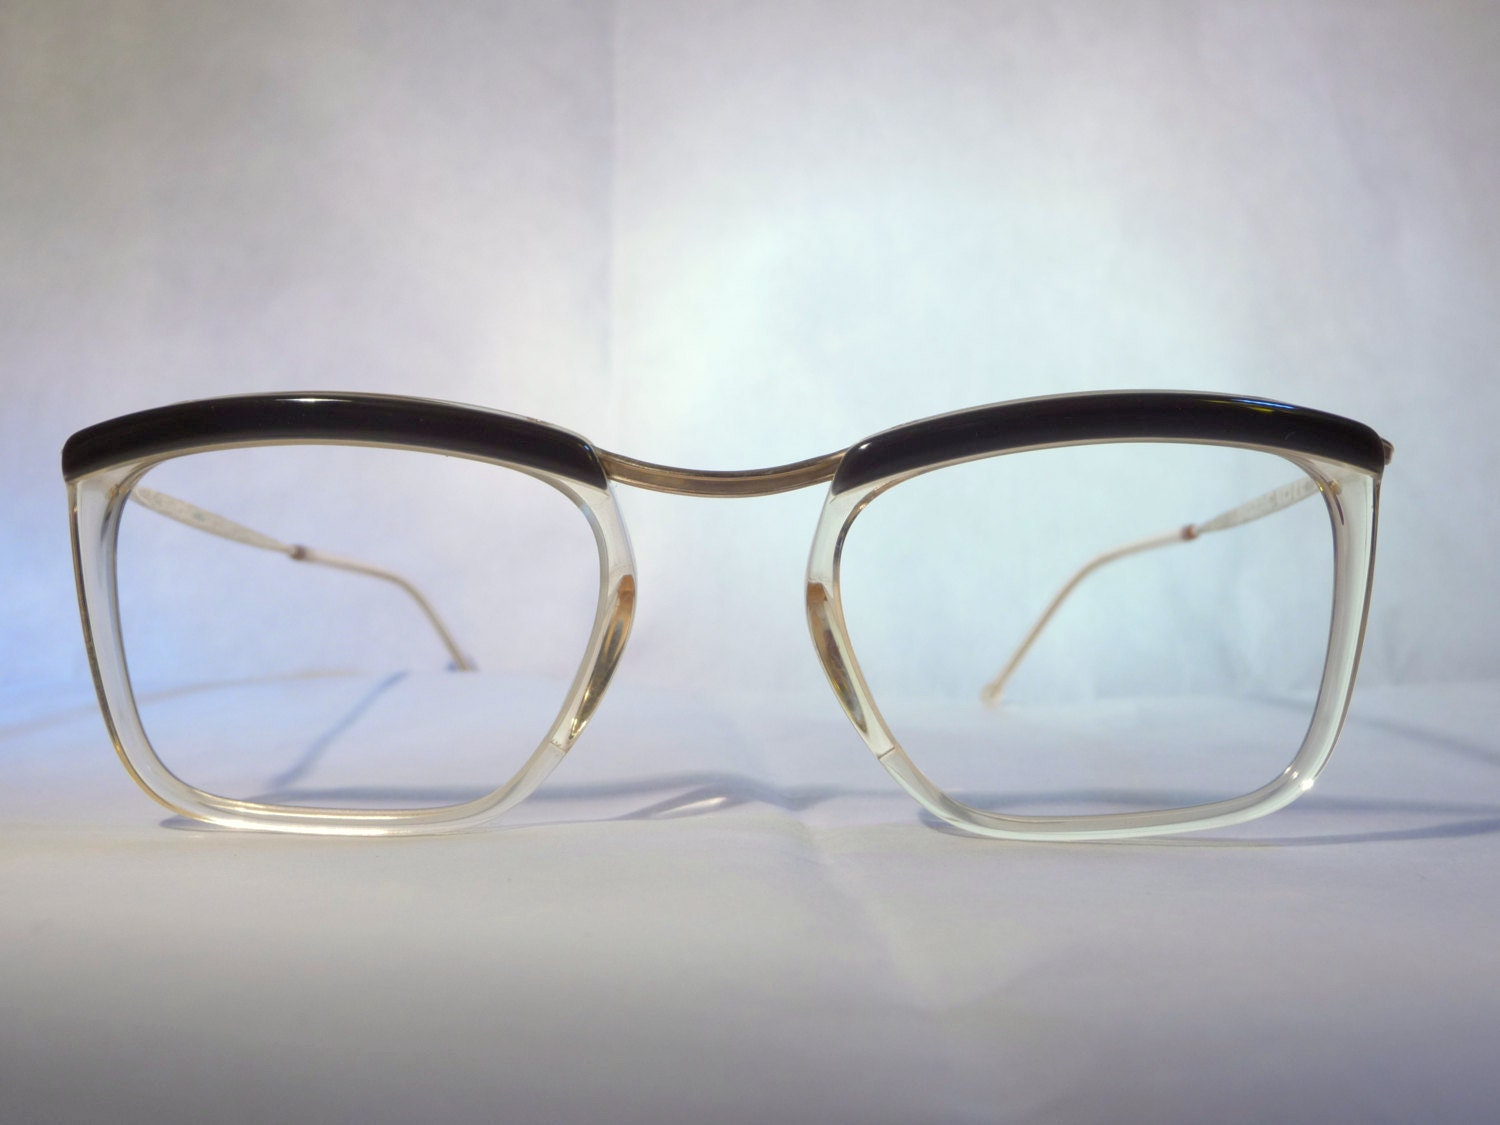 Frame Of Glasses In French : Amor 1970s clubmaster frames French browline eyeglasses